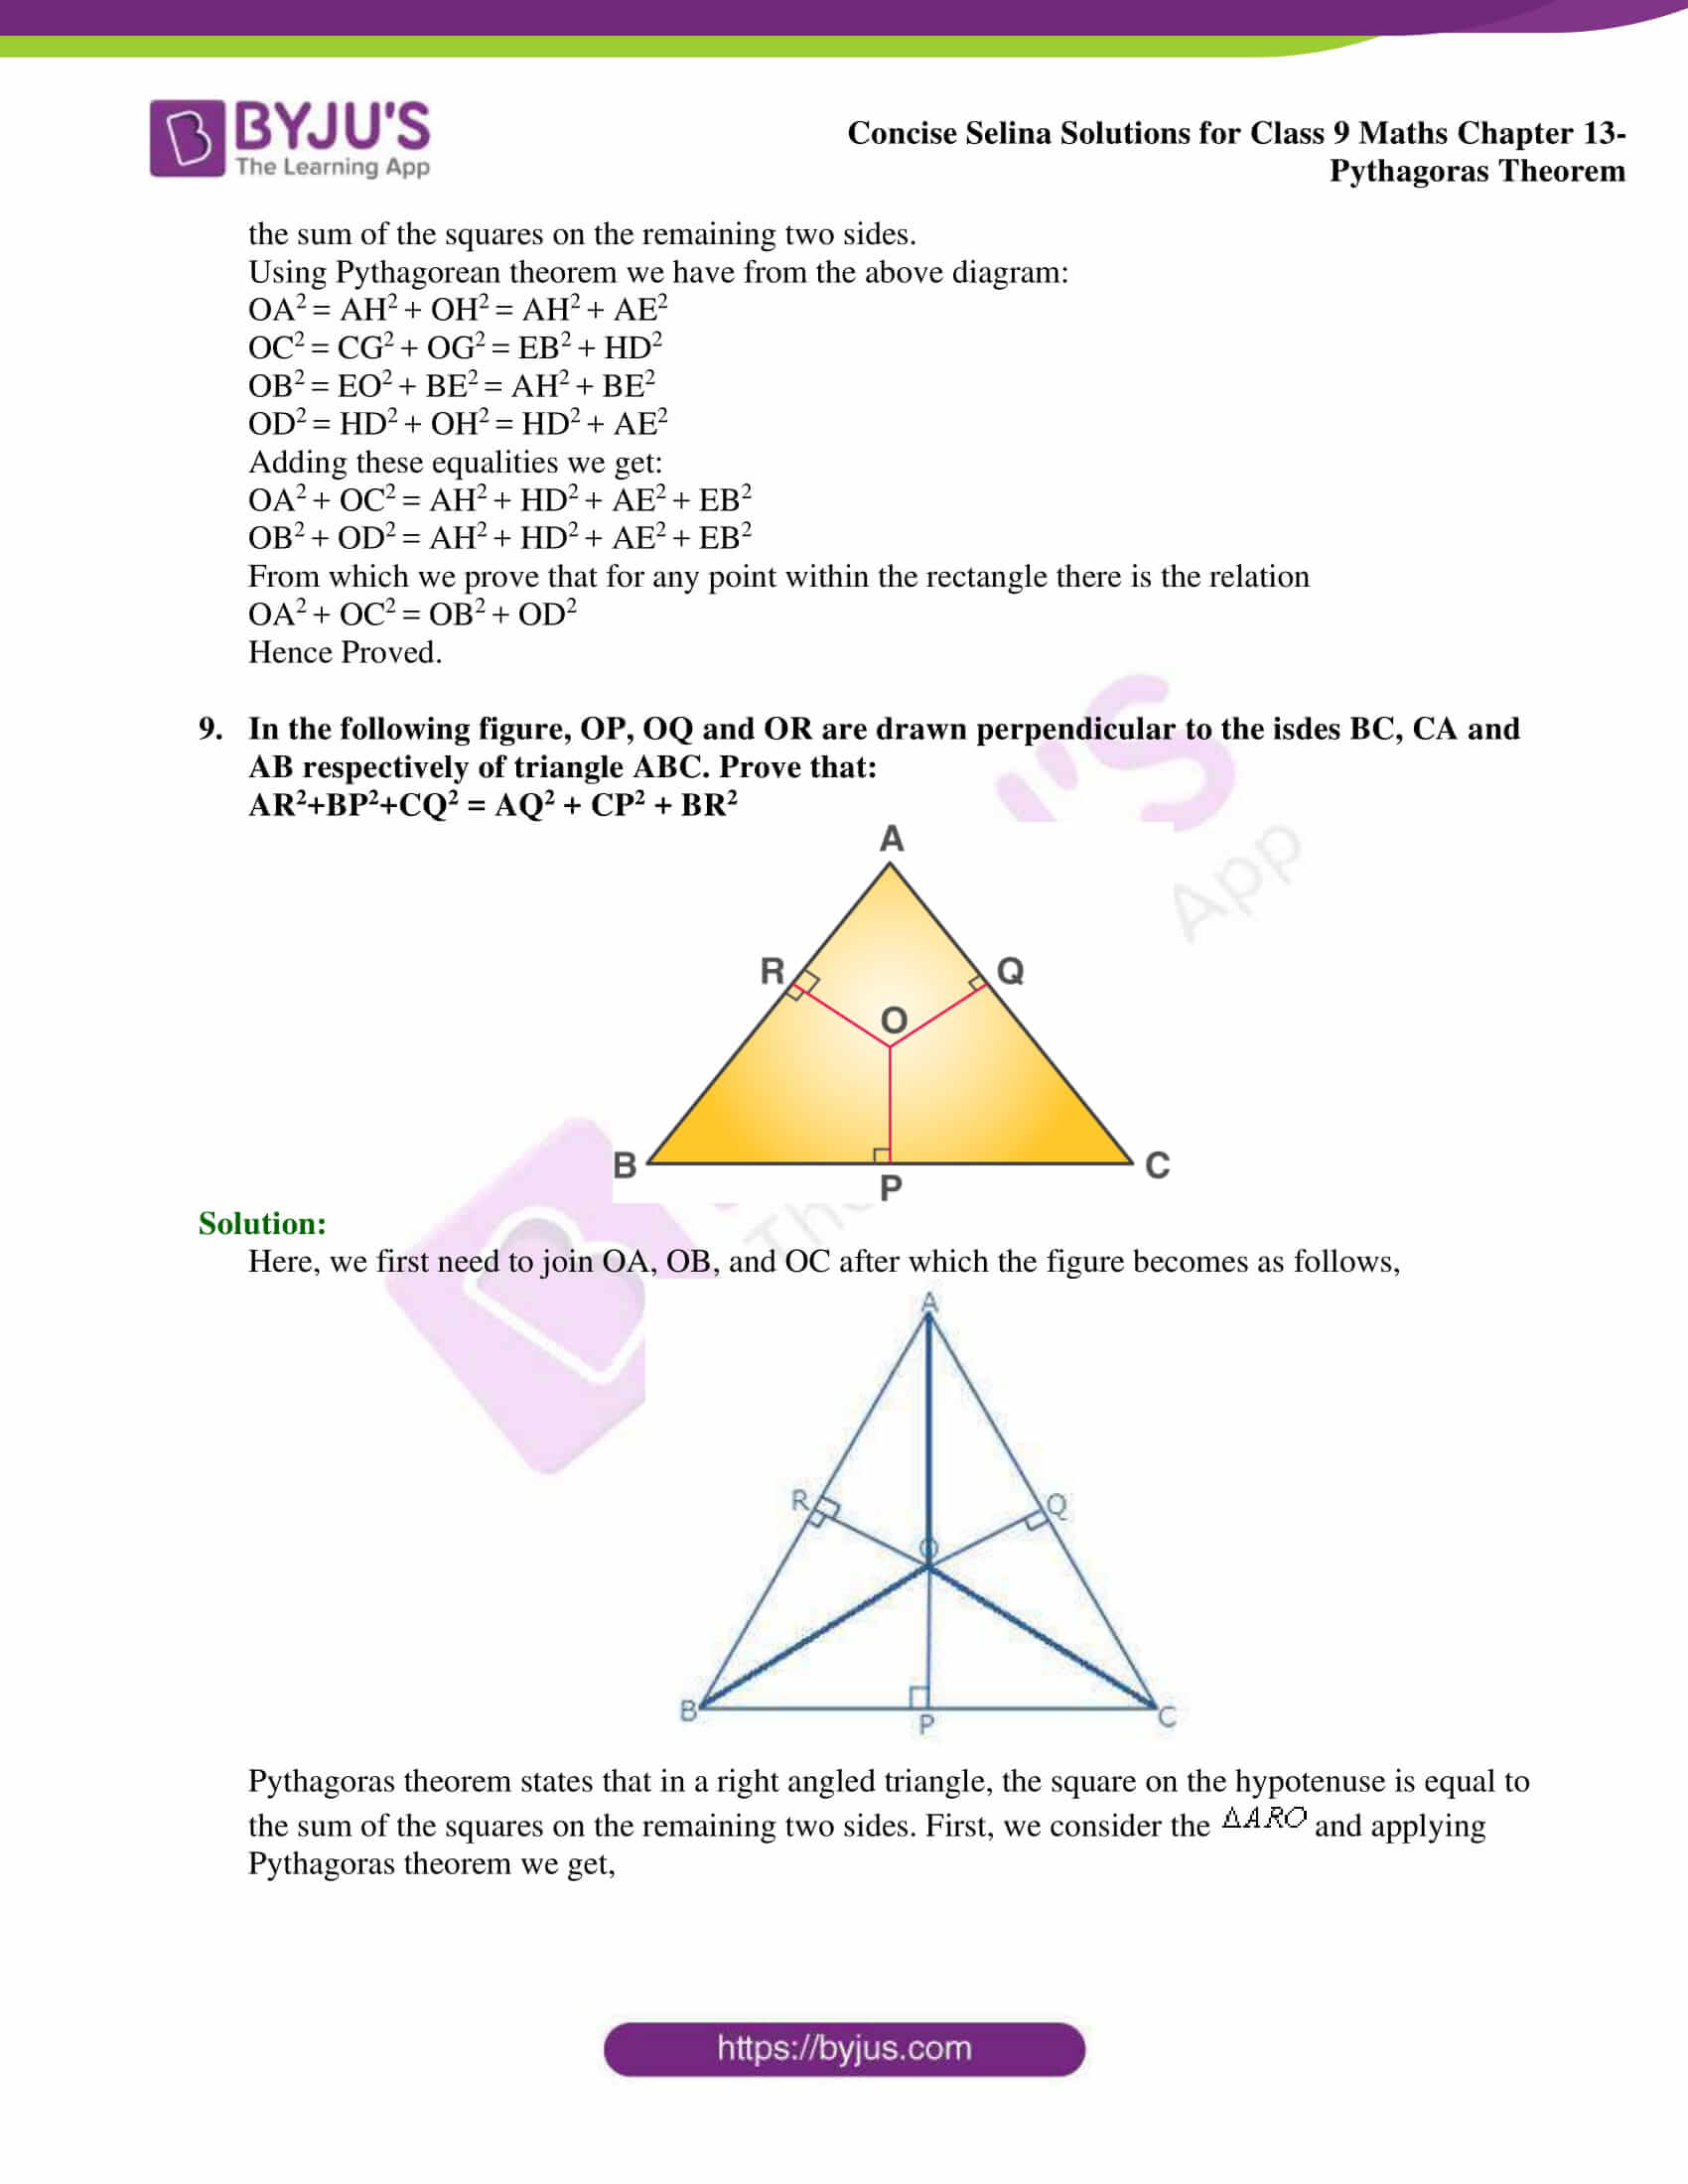 selina Solutions for Class 9 Maths Chapter 13 part 17